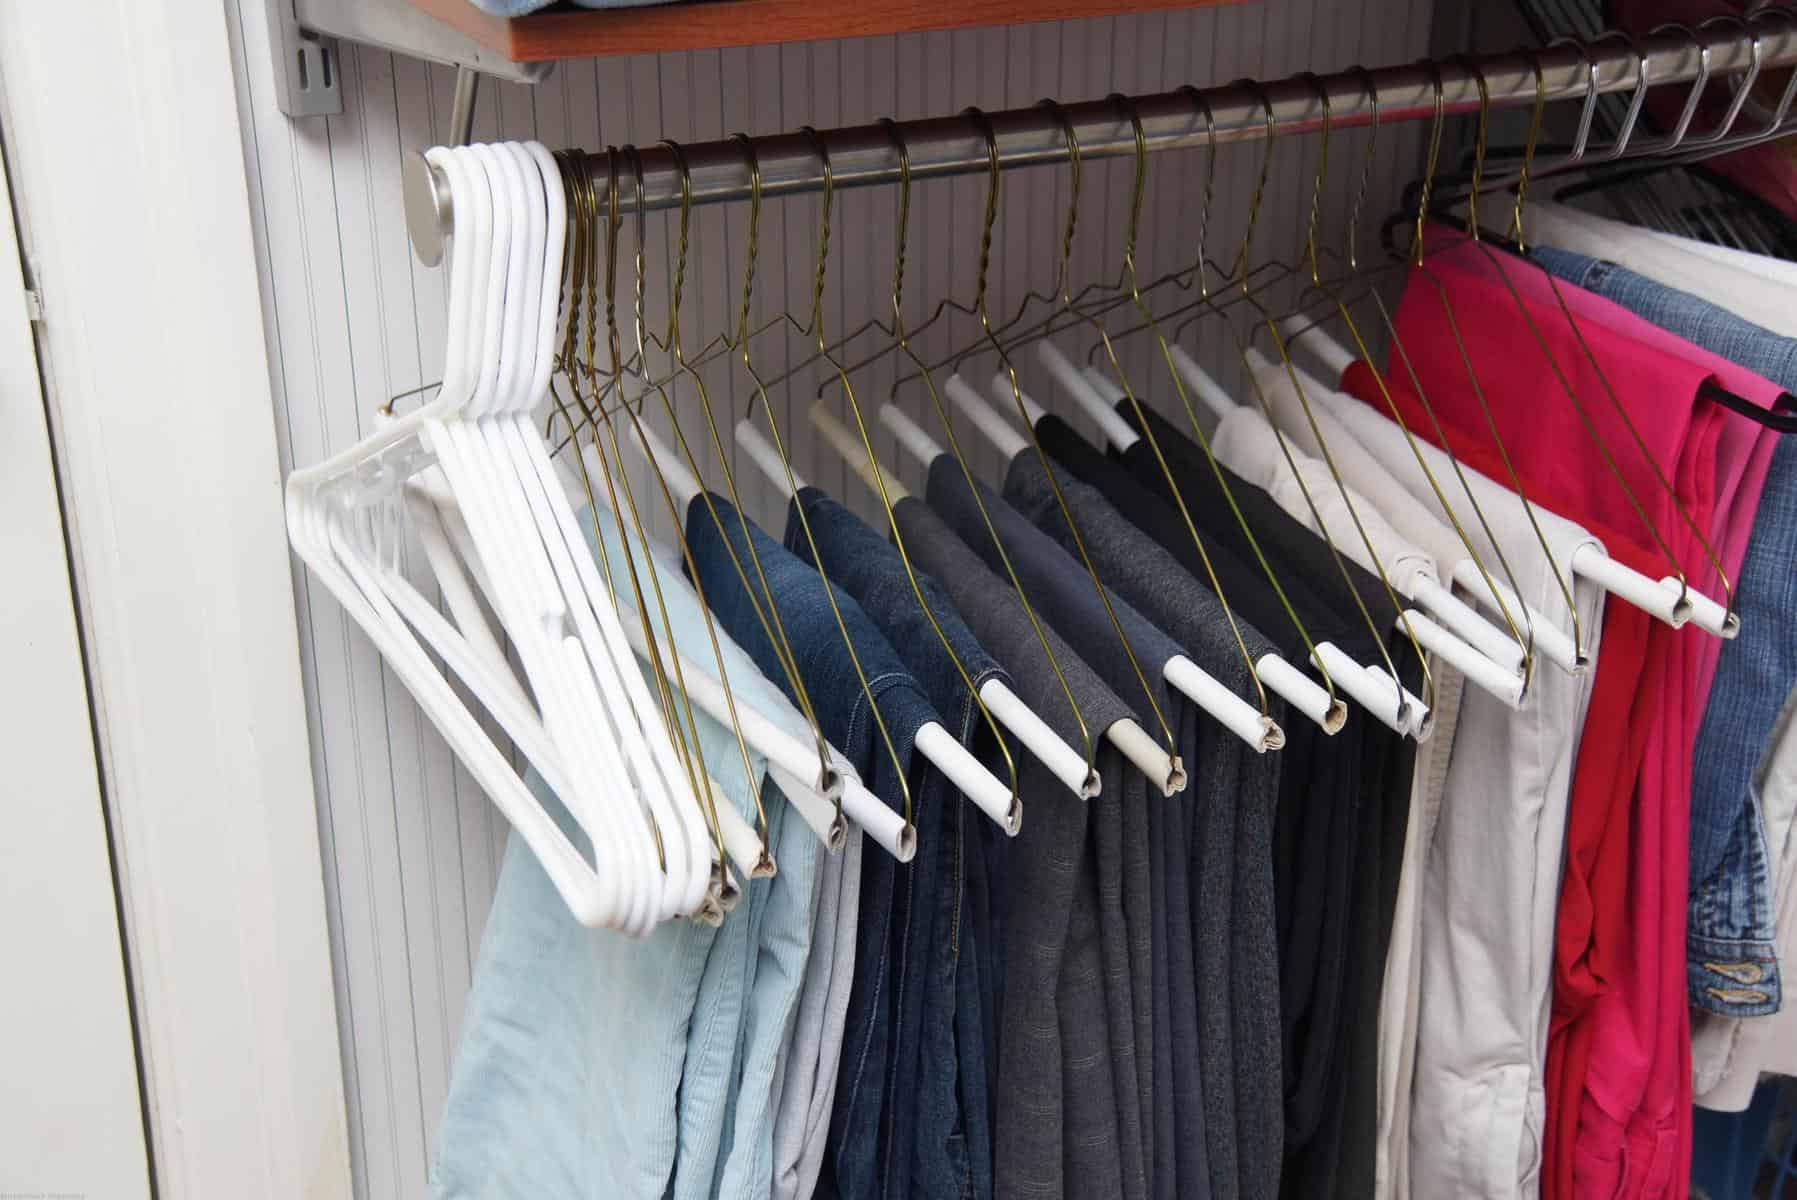 Superbe Pants Hangers When Organizing In Closet